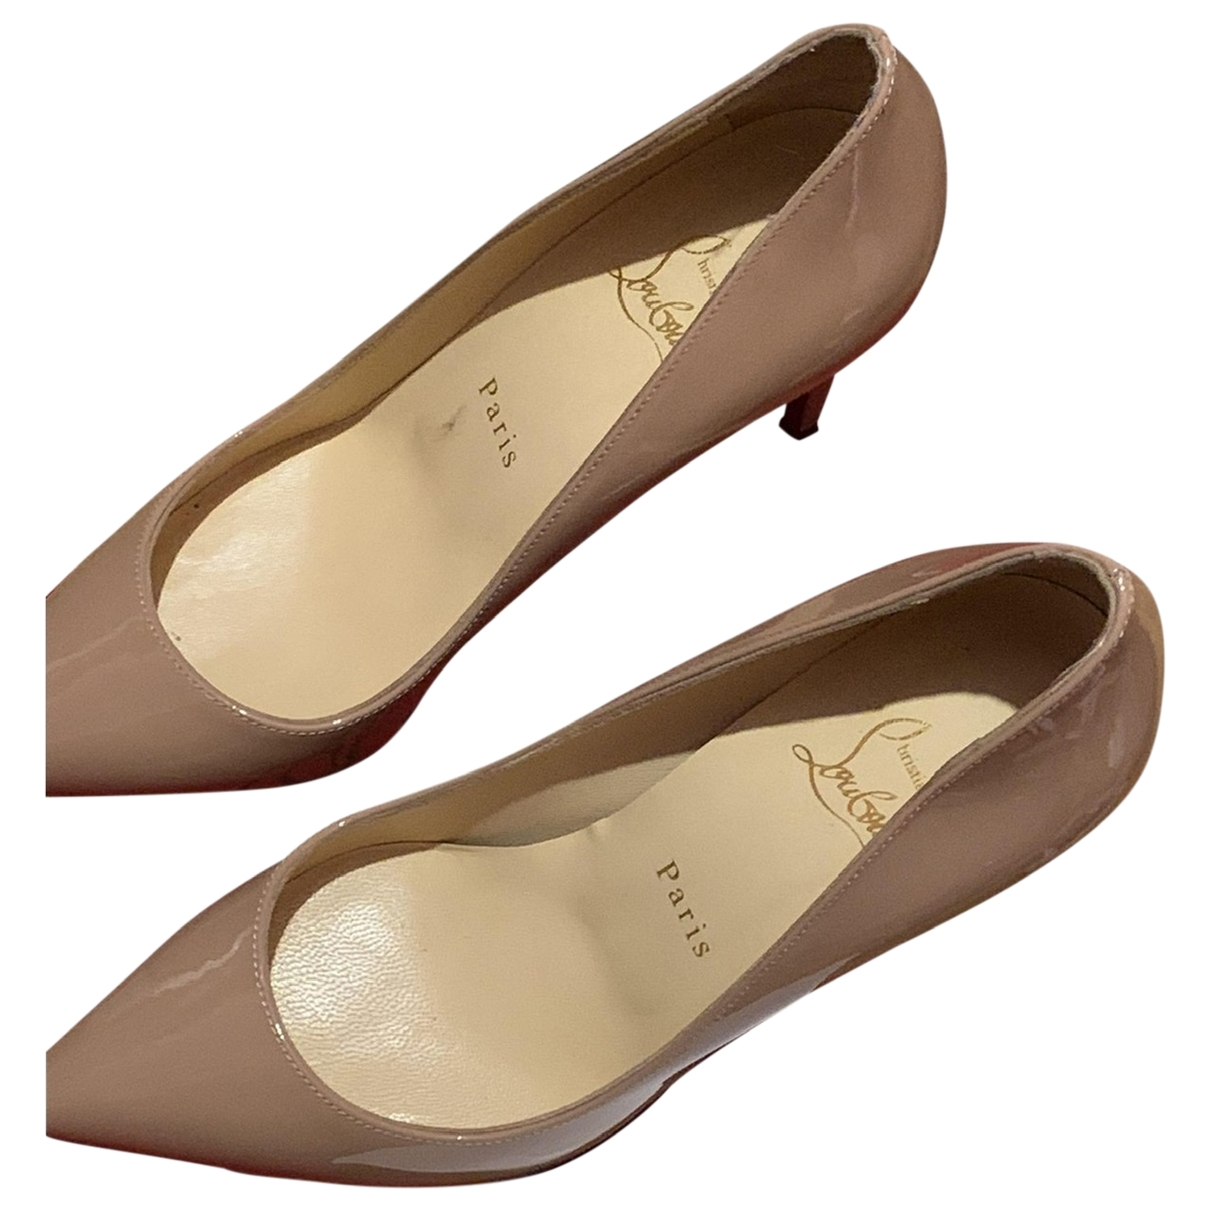 Christian Louboutin Pigalle Beige Patent leather Heels for Women 37.5 IT